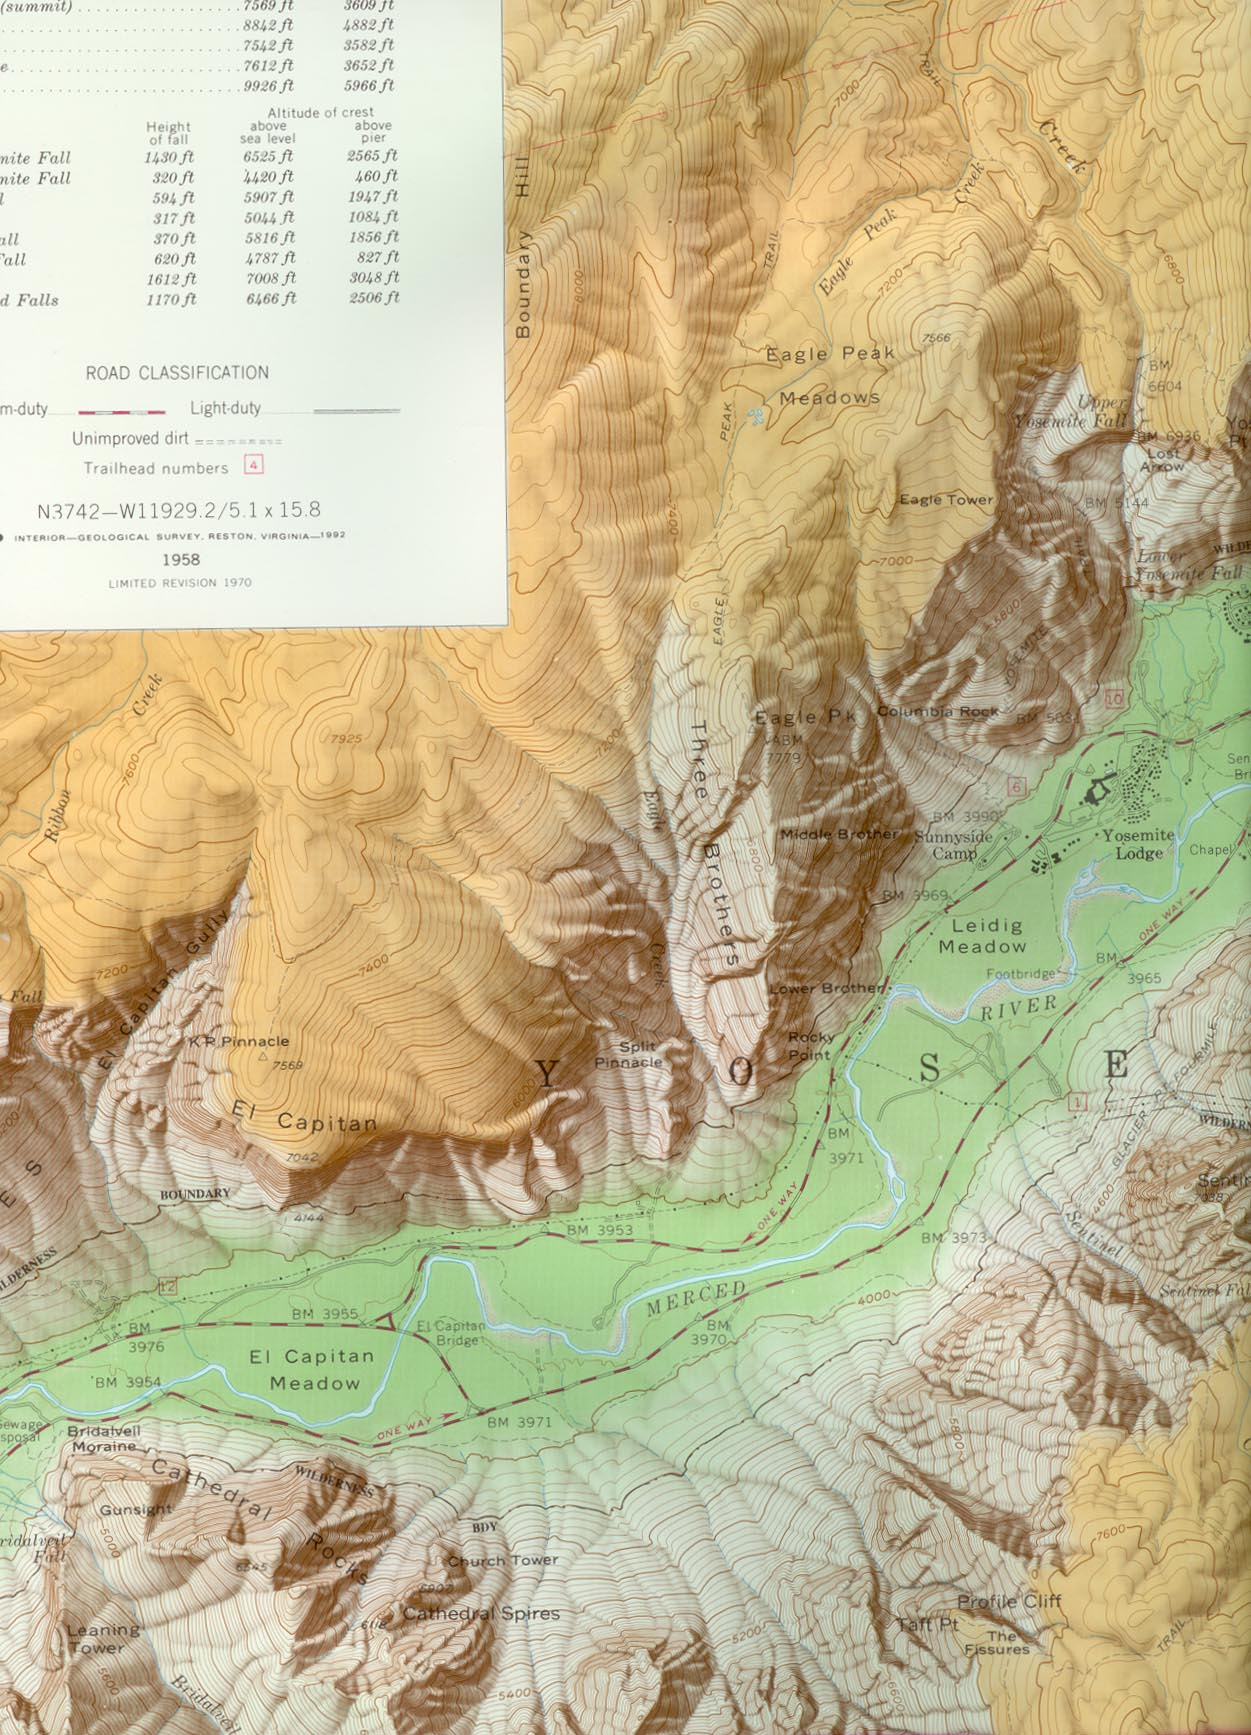 Yosemite Valley Topo Map Mid West Section